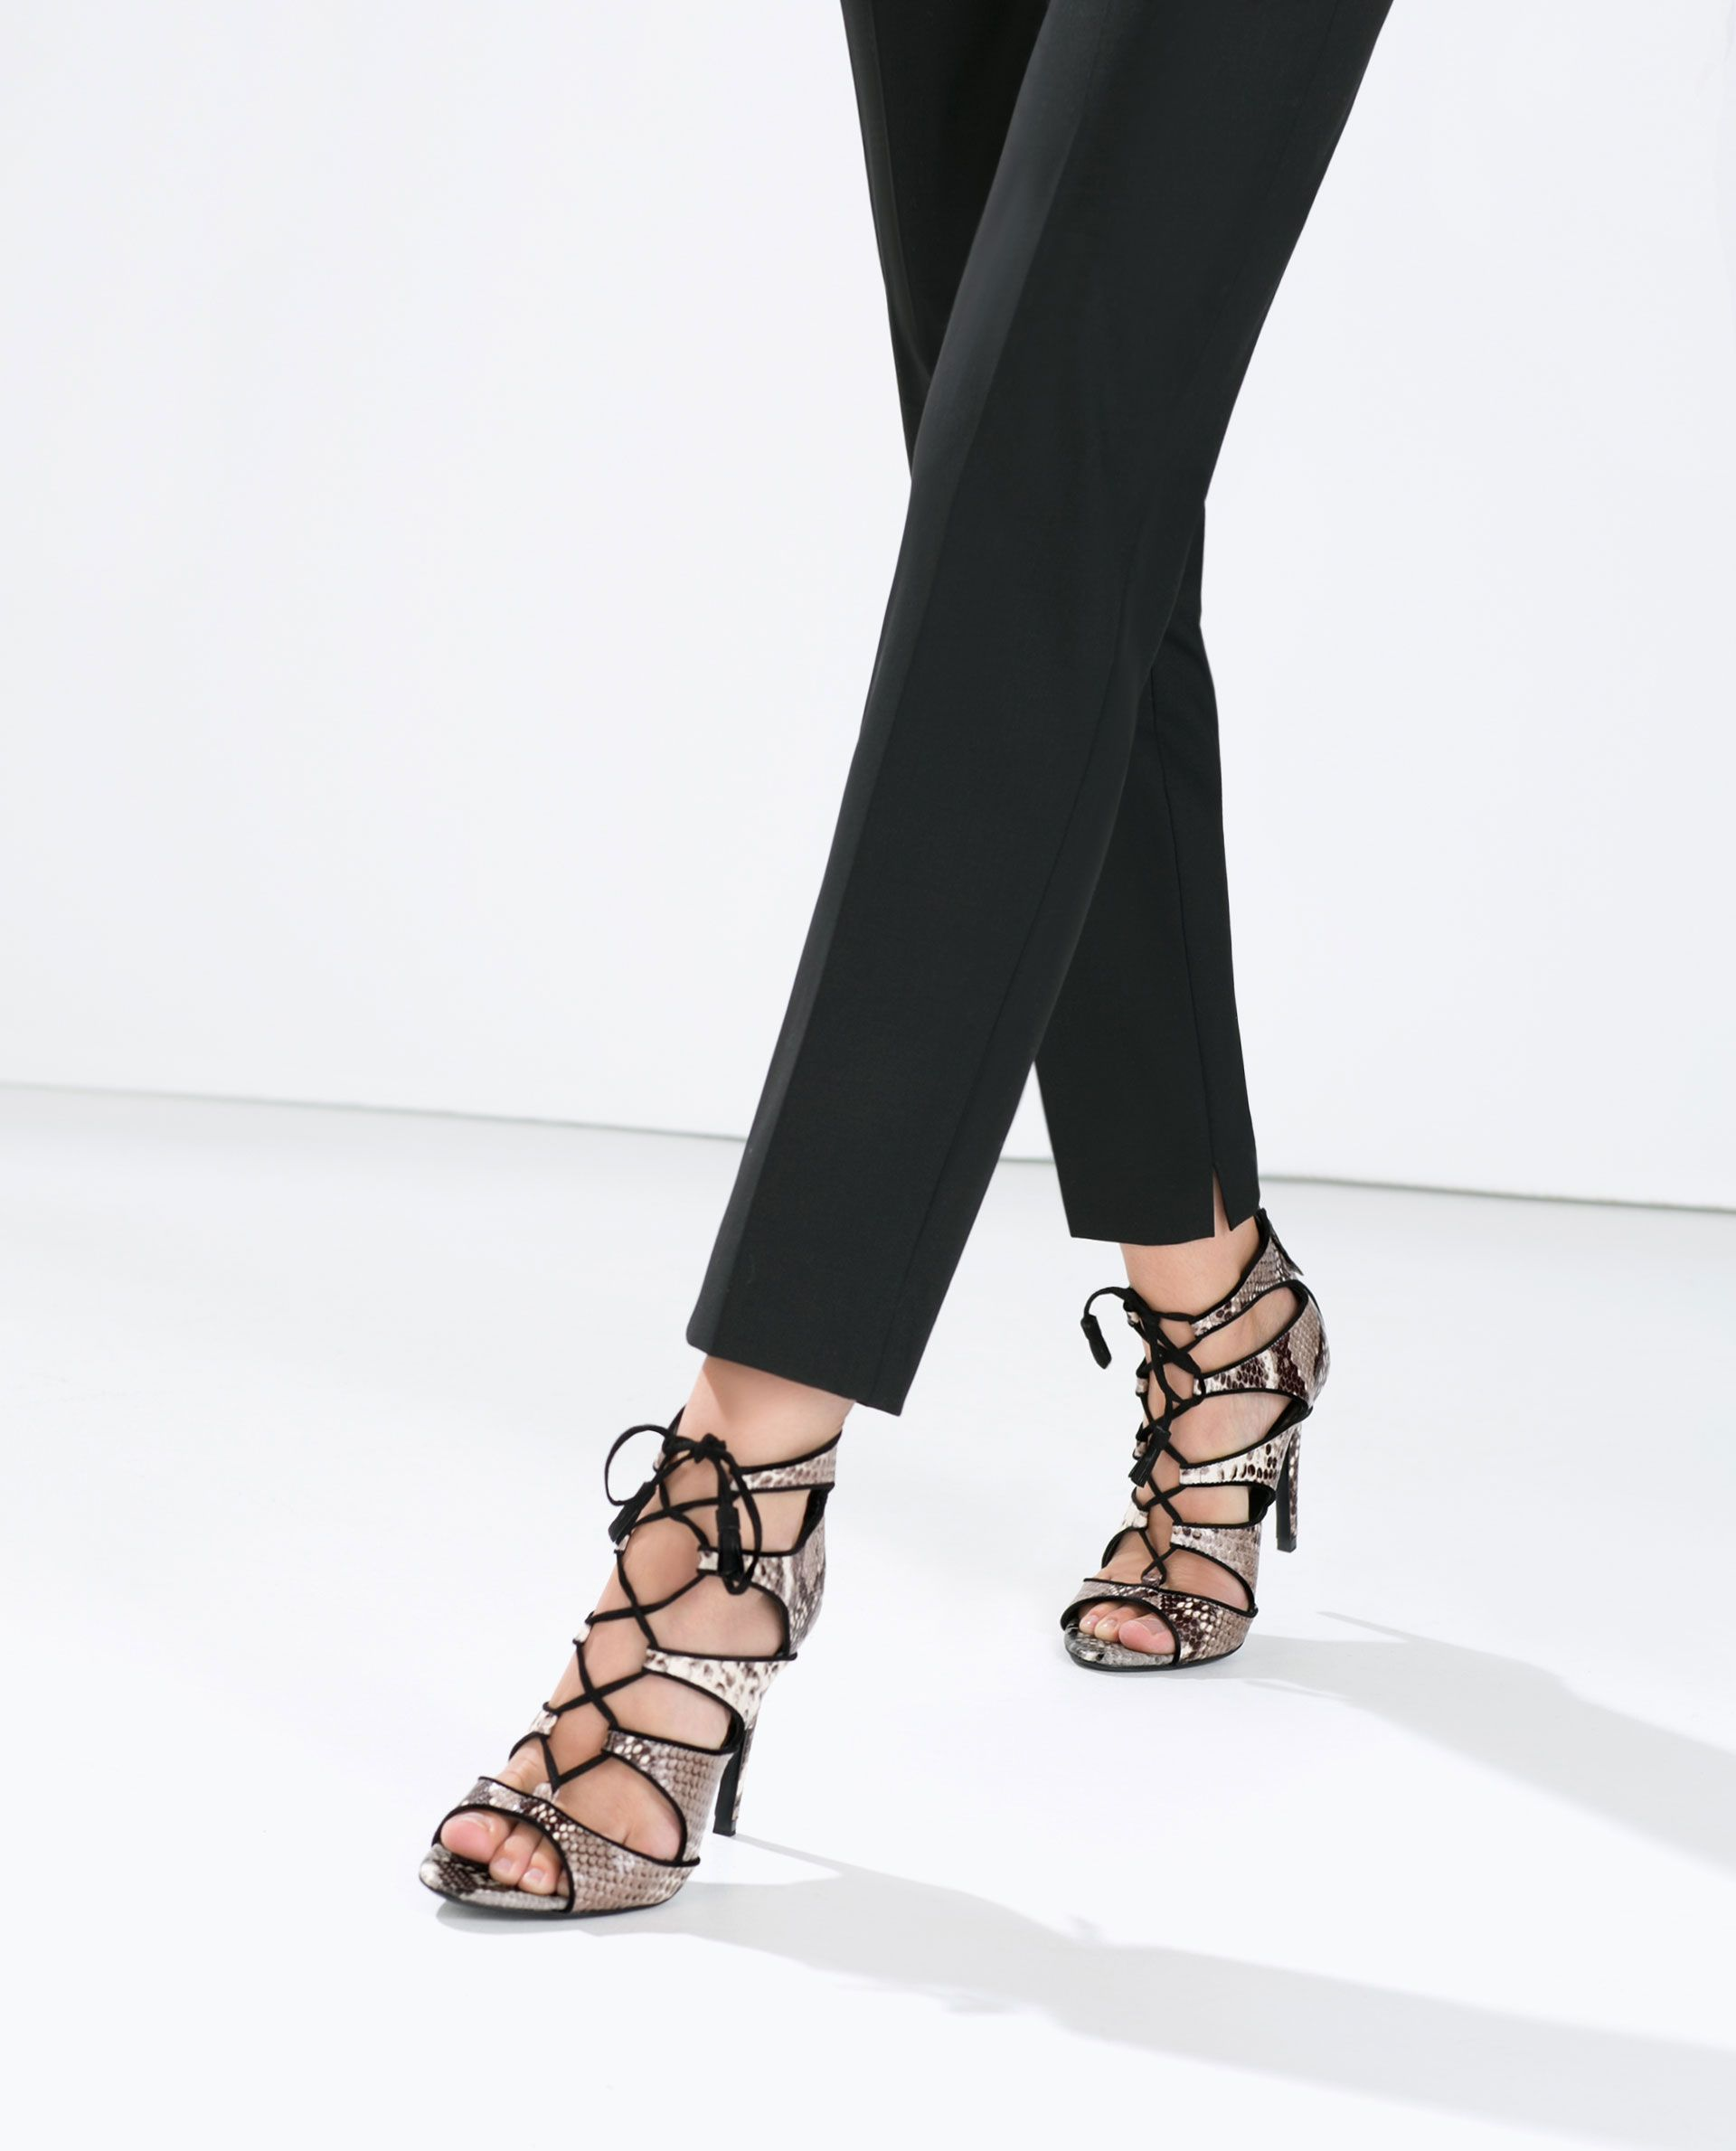 ca39f7d7d92 Image 2 of HIGH-HEELED SNAKE PRINT LEATHER SANDAL from Zara